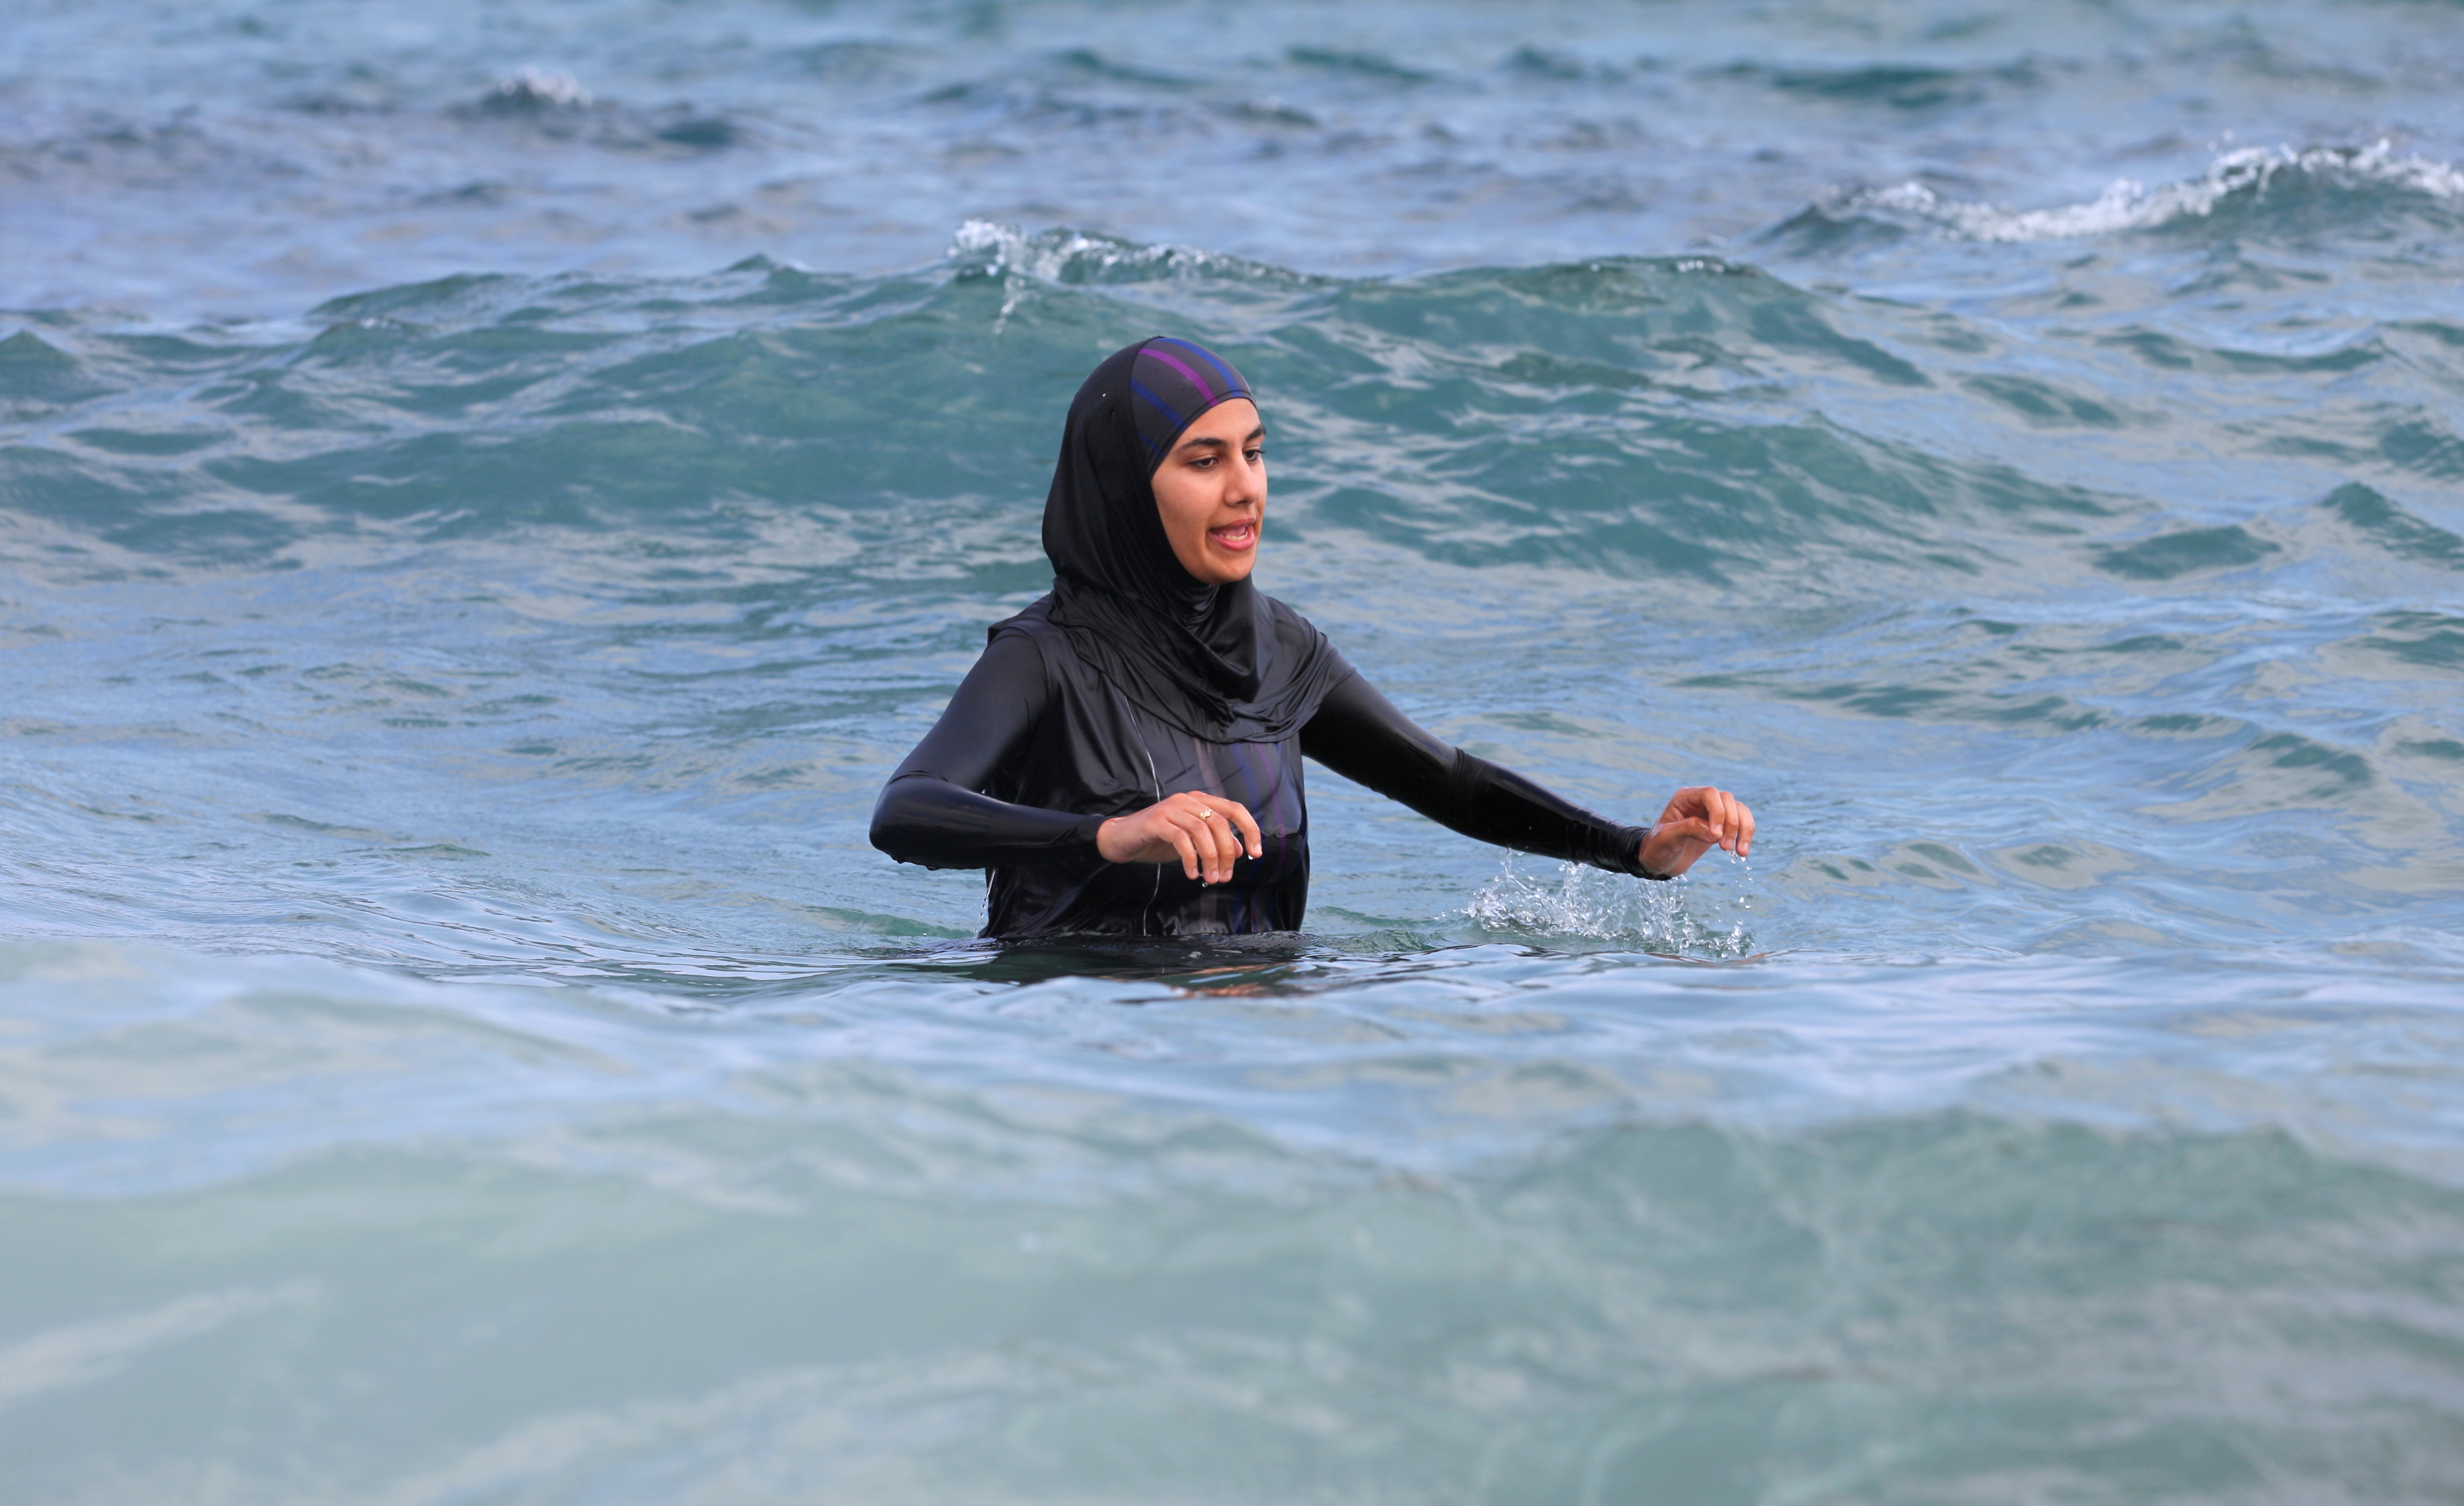 a fully-clothed woman swimming in the Mediterranean Sea in August 2013, photo 1/2